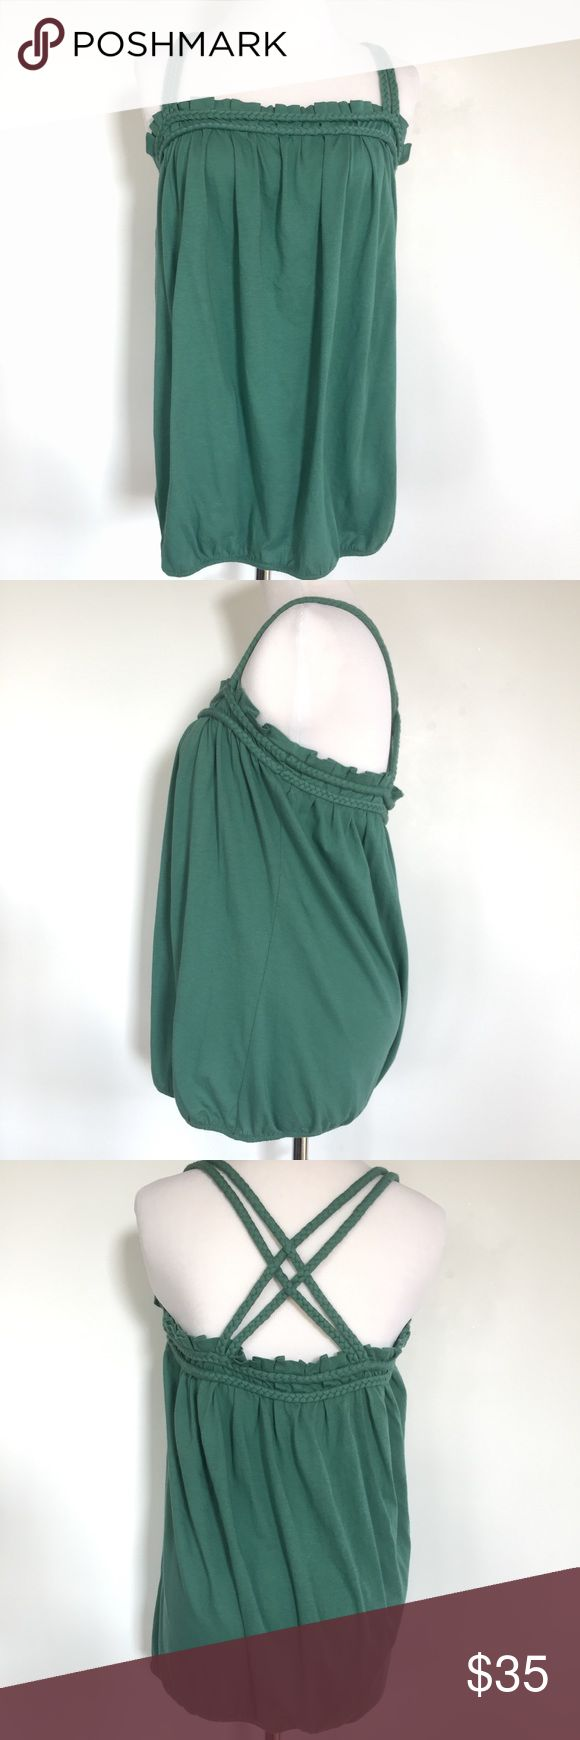 BCBGeneration Braided Top New with Tags! Pretty teal tank top with braided straps that crisscross in the back.  Elasticized bubble hem.  Very flattering on, just too big for me now. BCBGeneration Tops Tank Tops